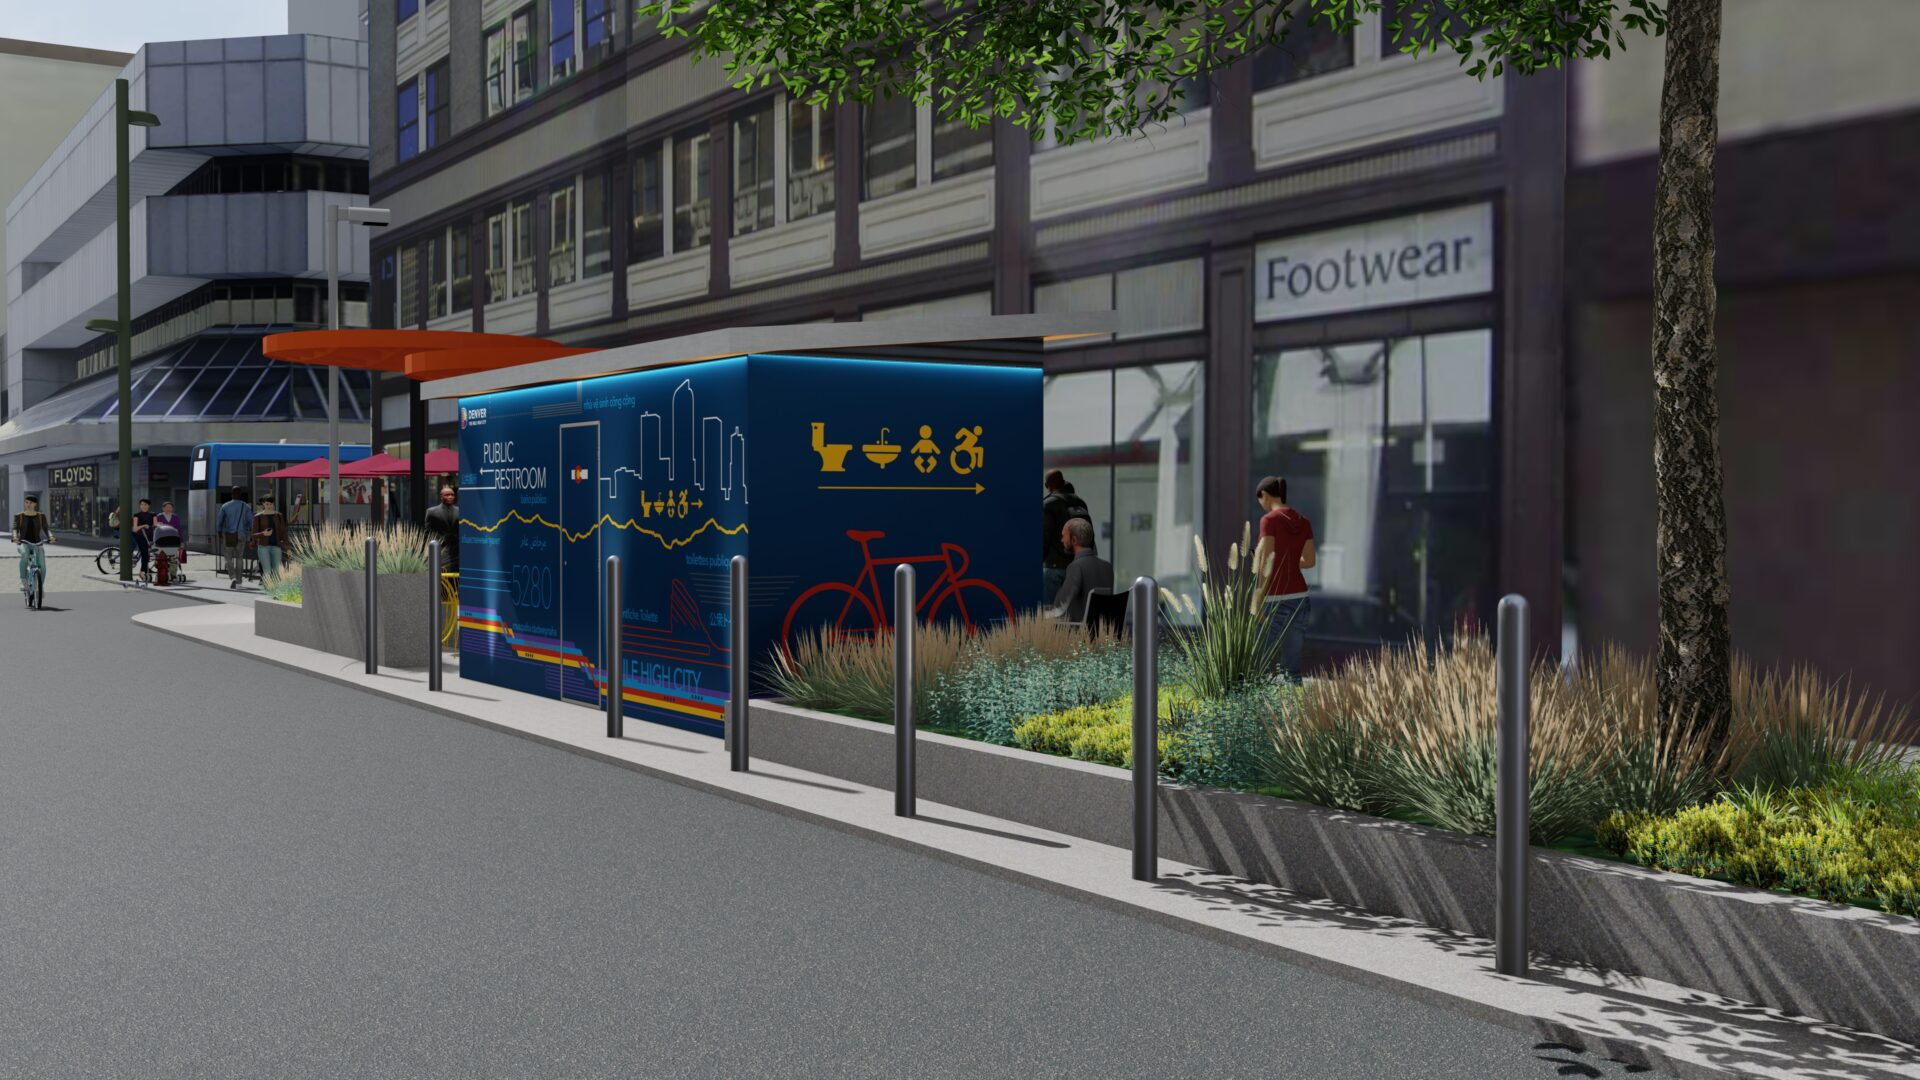 Rendering of finished area after new bathroom facility is installed on Champa St in downtown Denver.